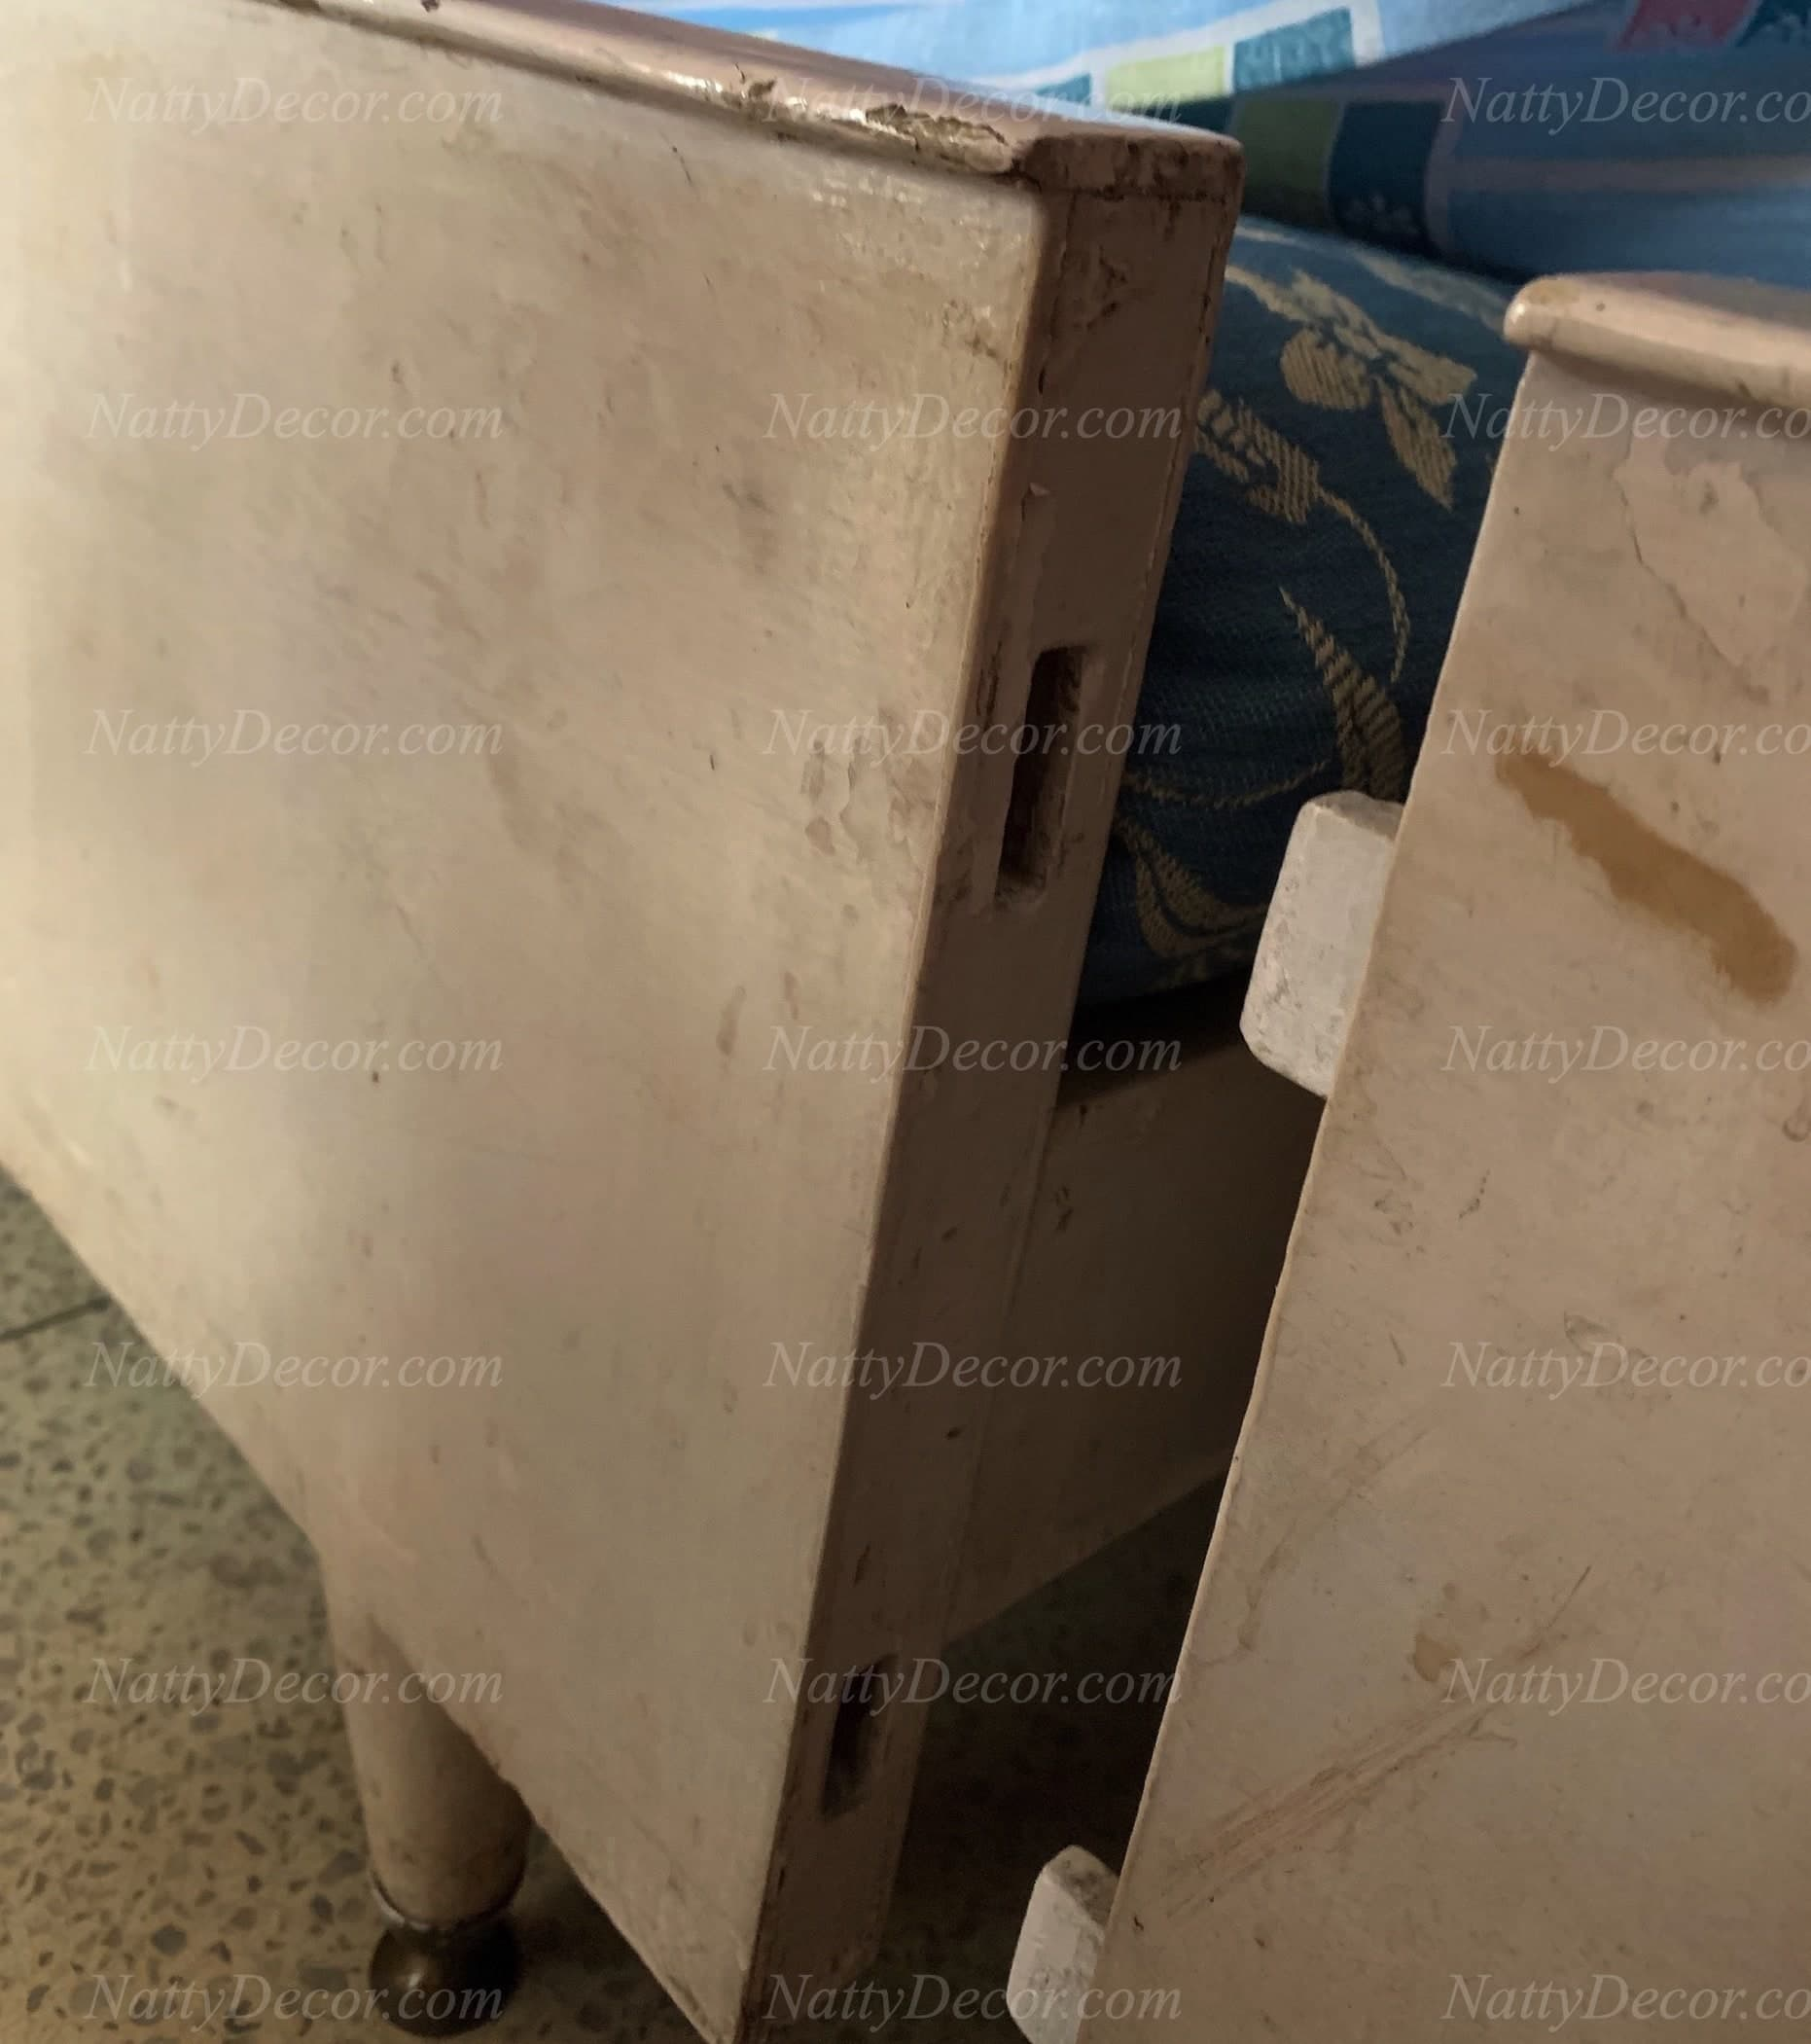 image of an old bed with footboard joints